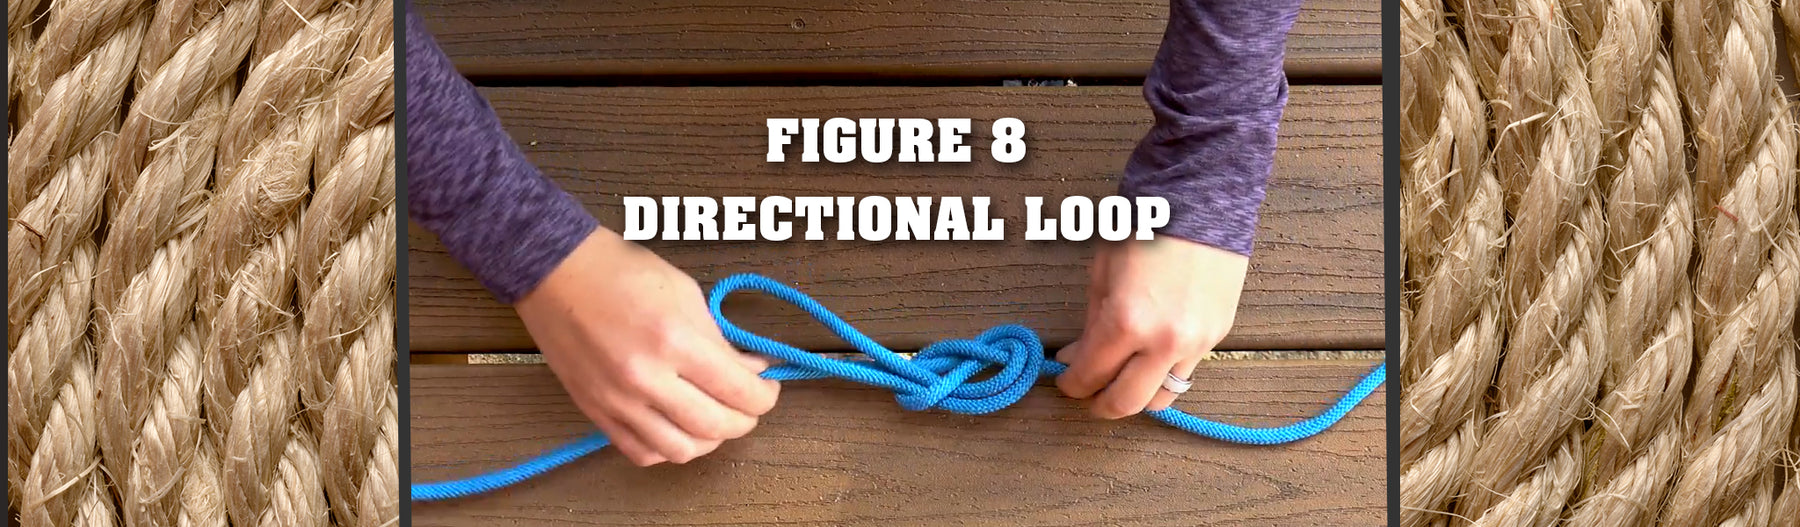 Figure 8 Directional Loop